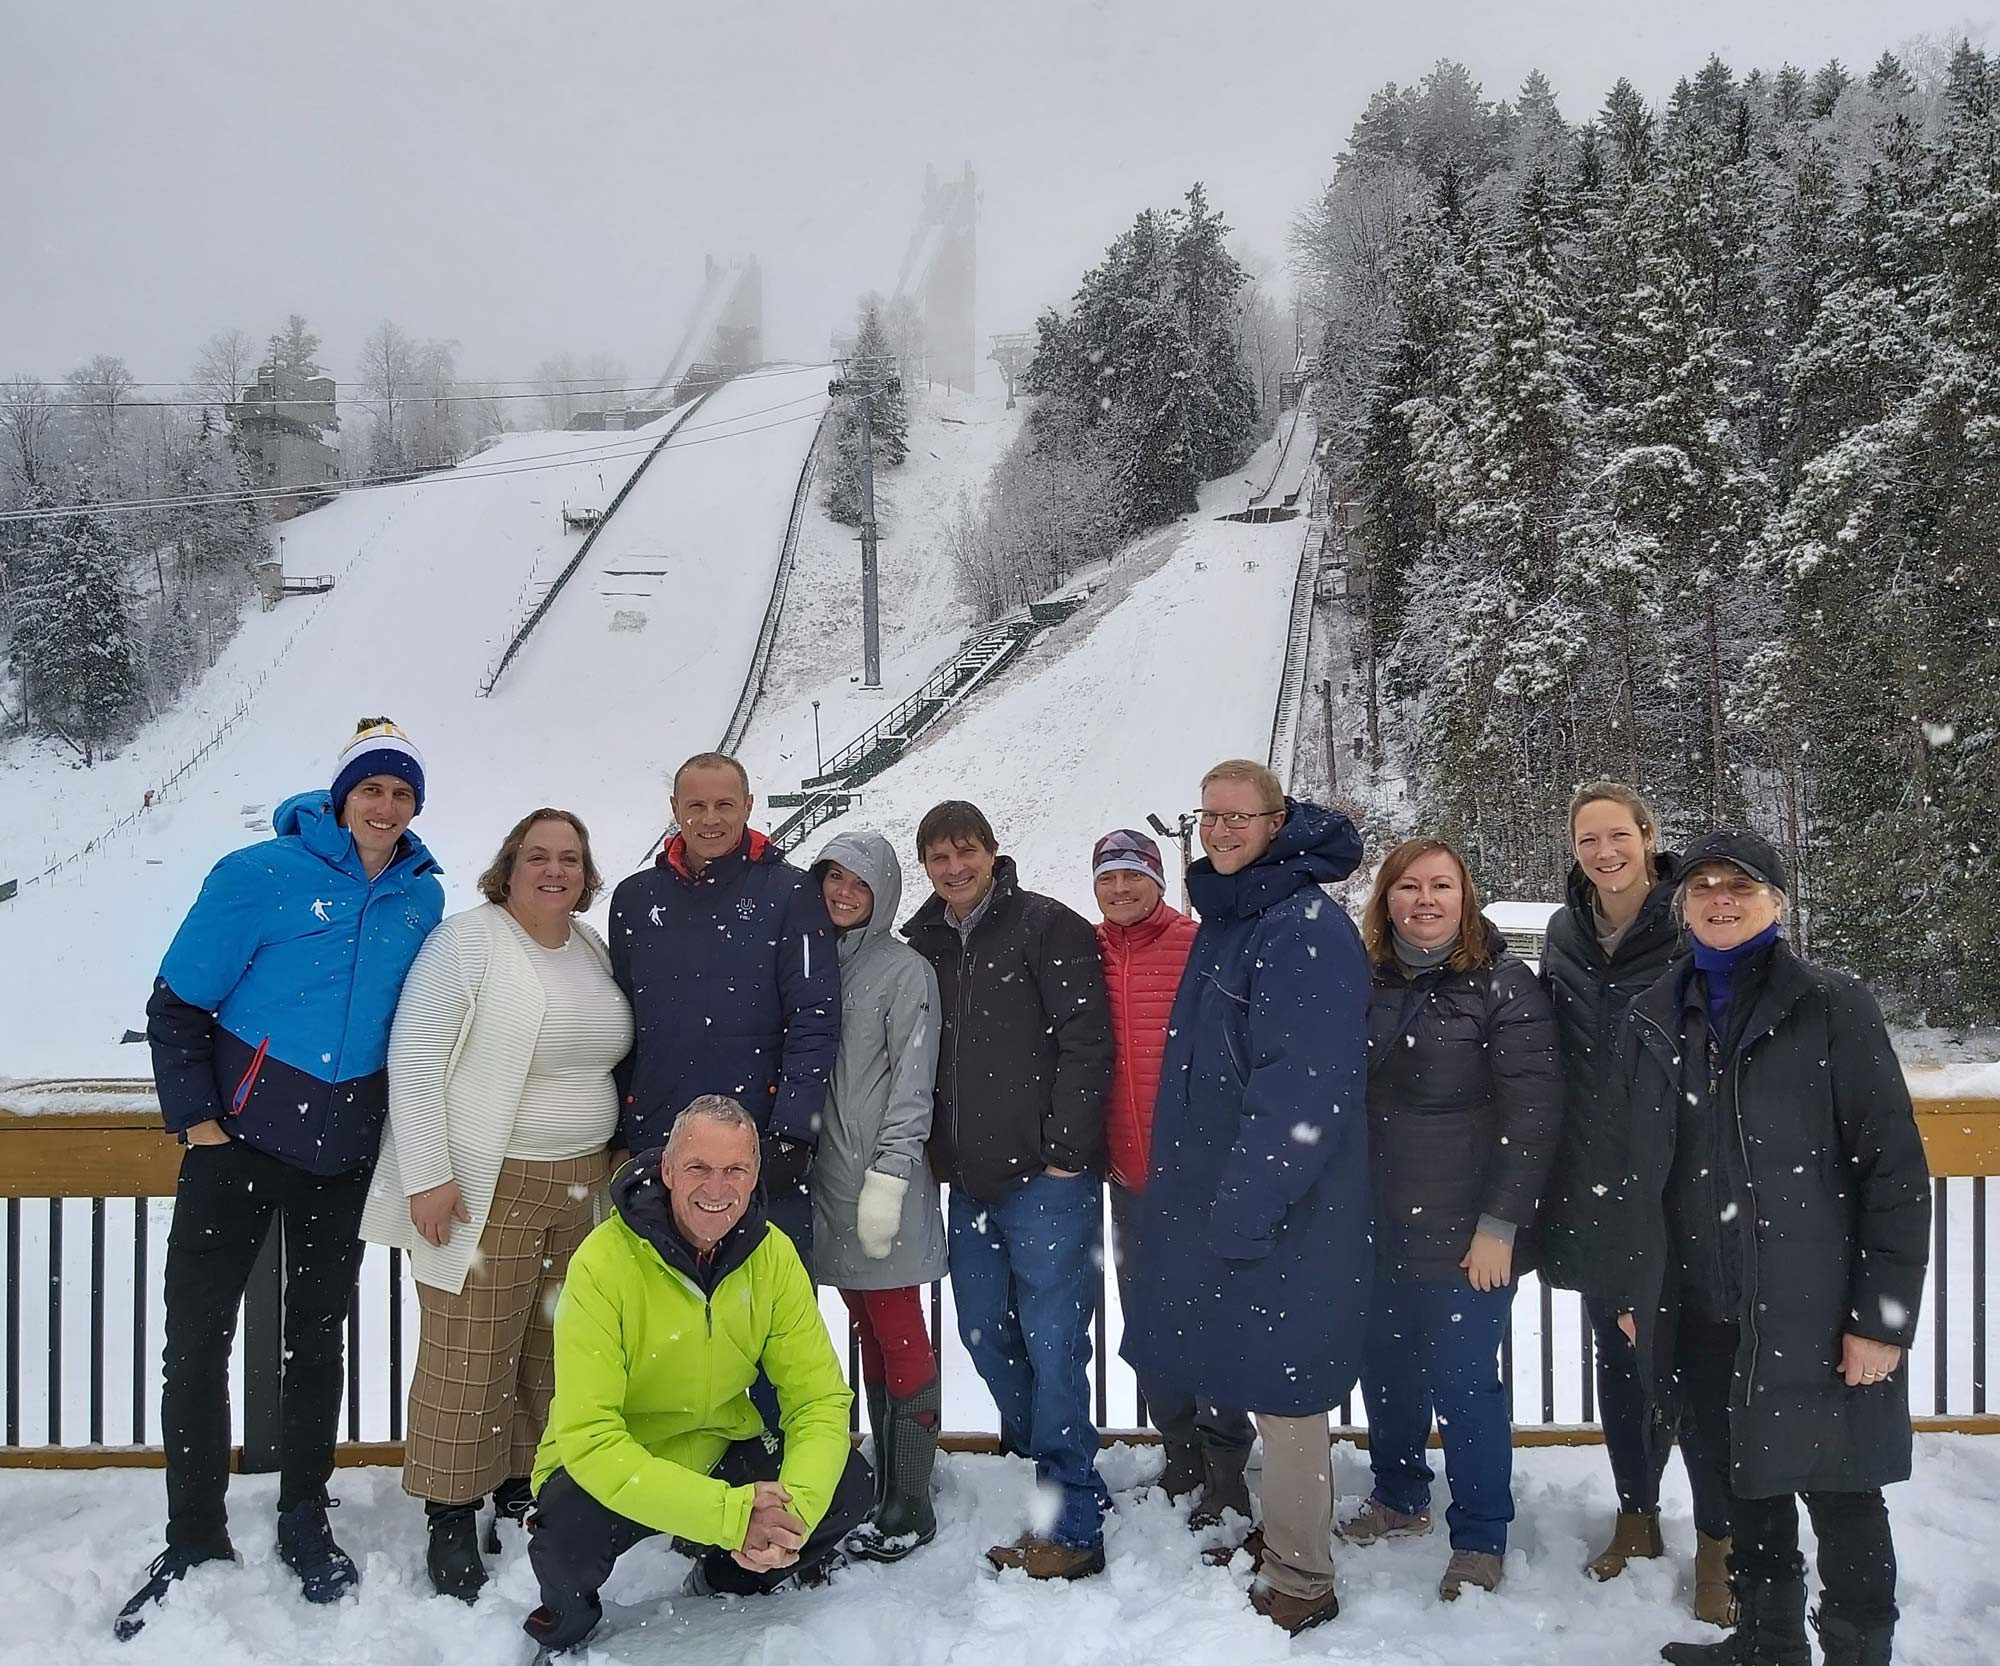 Lake Placid hosts FISU seminar in preparation for 2023 Winter Universiade